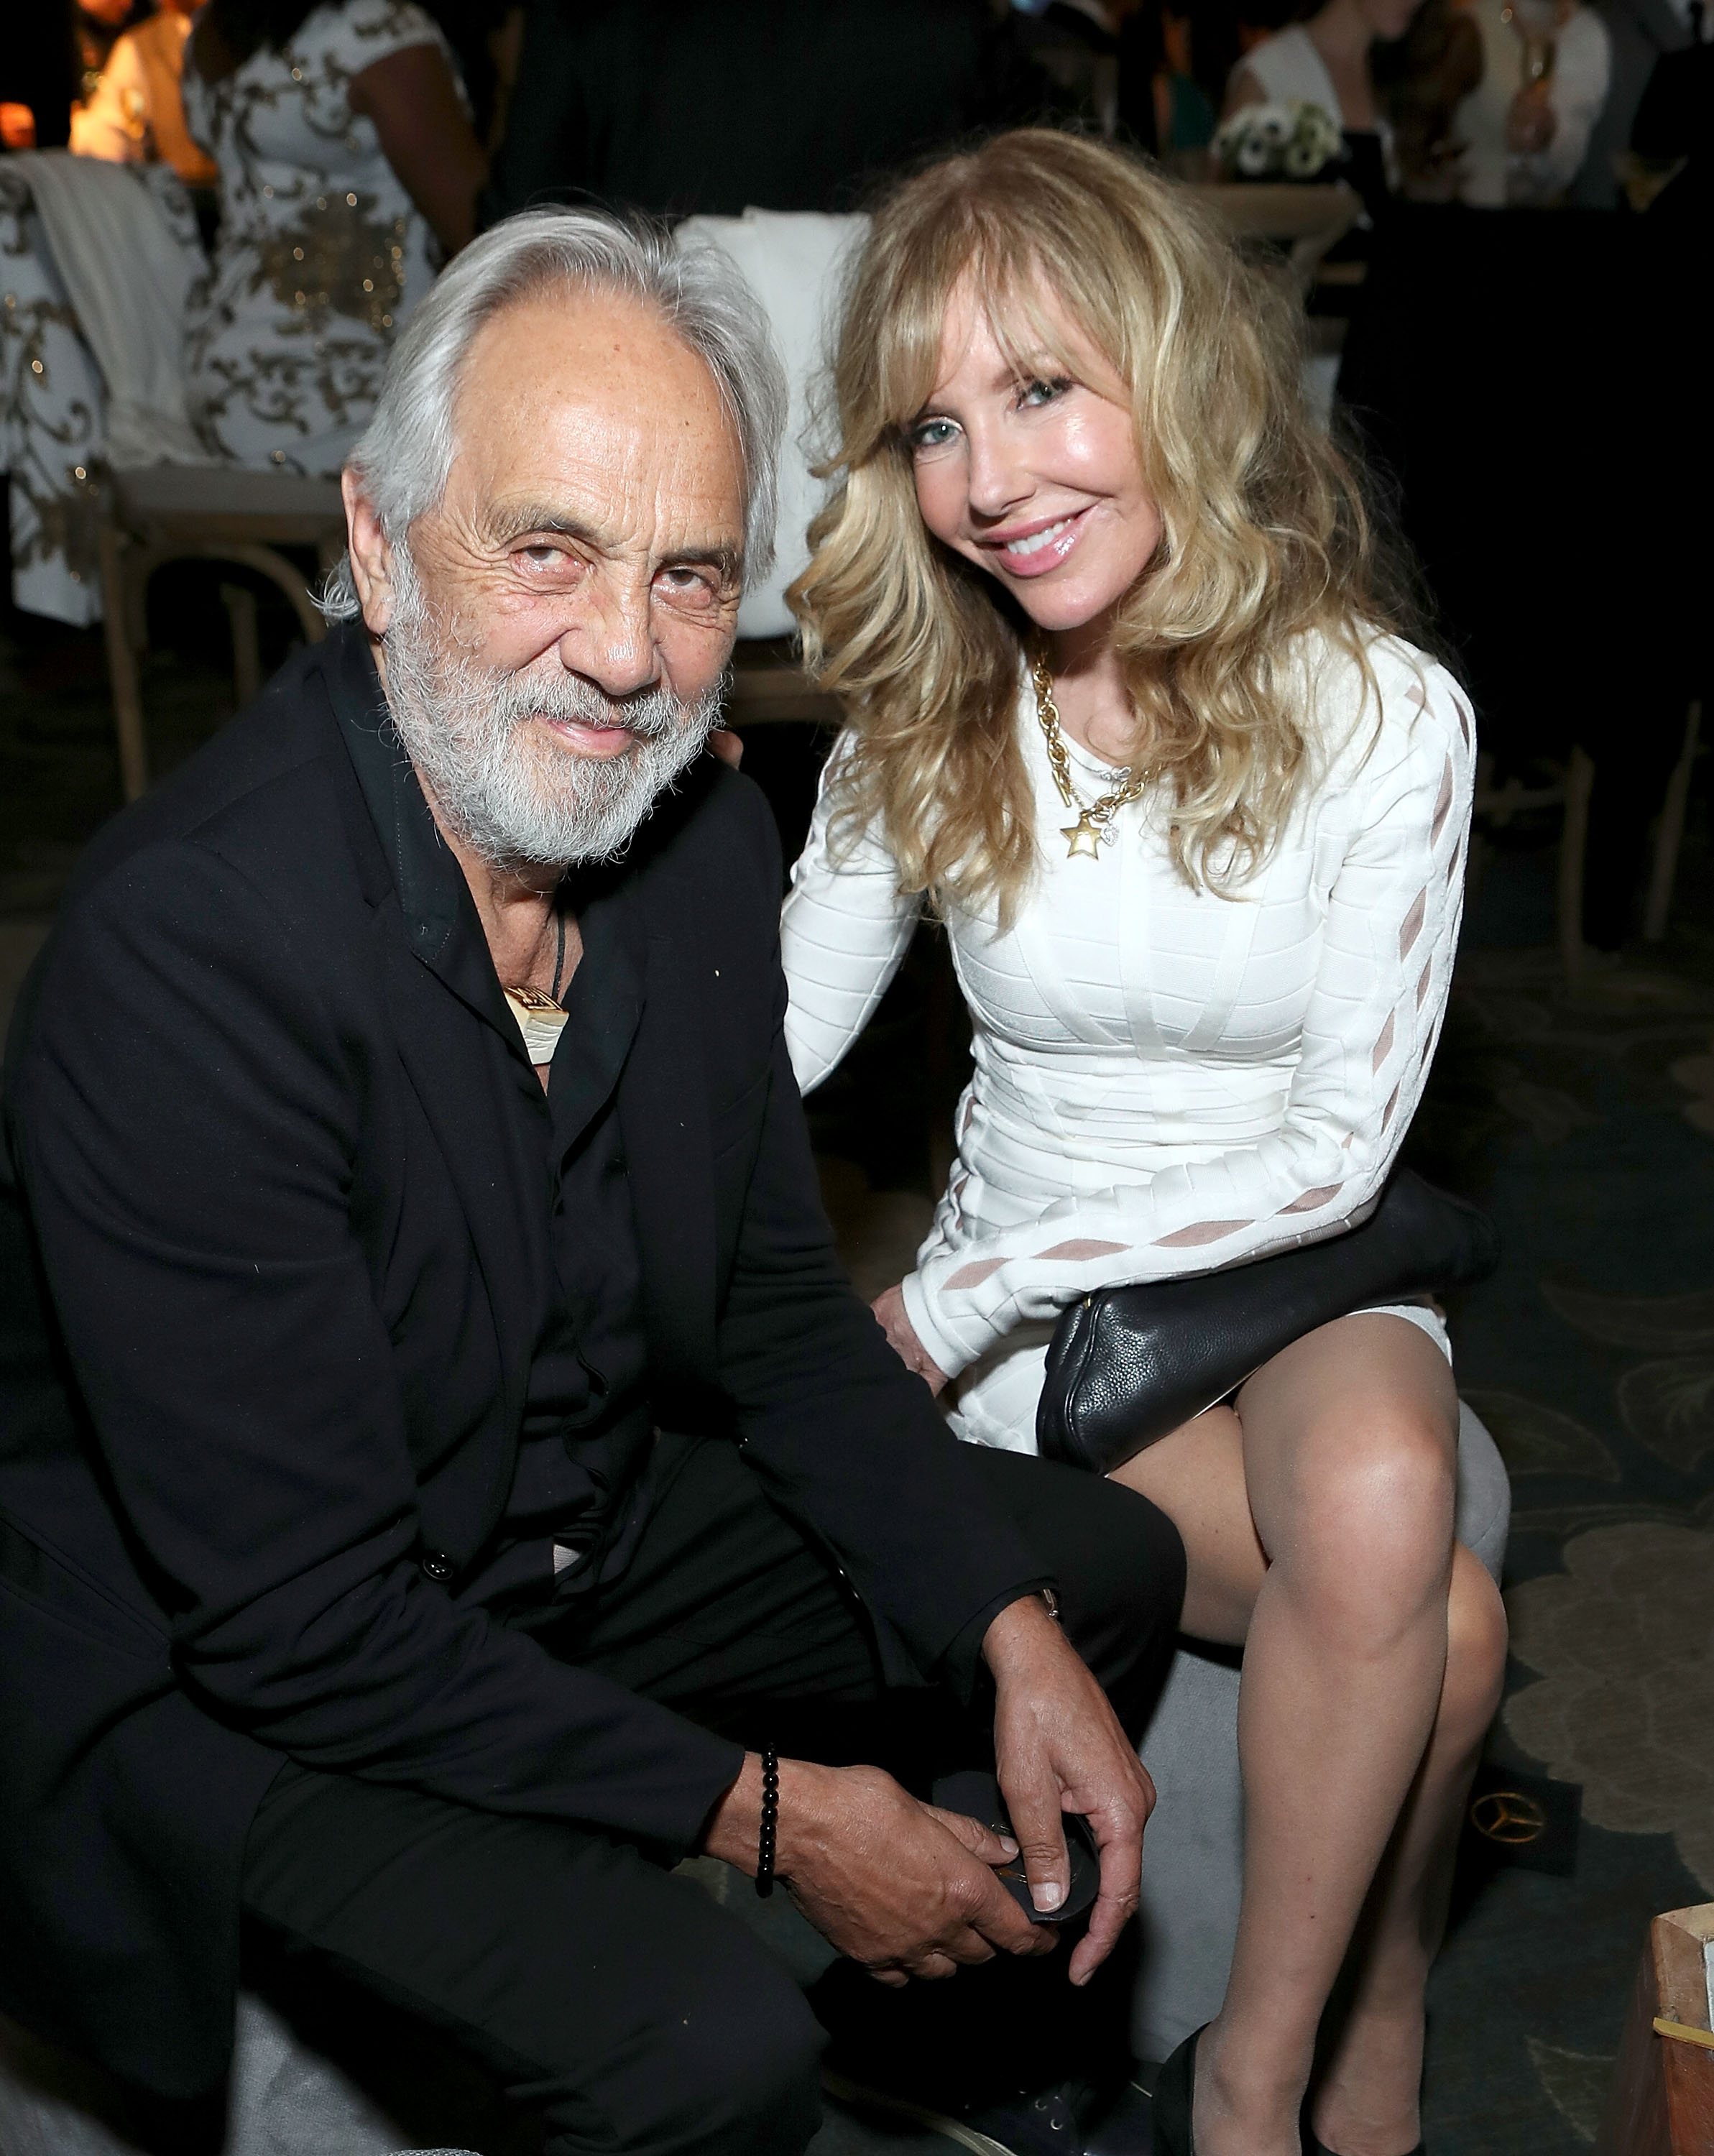 Comedian/actor Tommy Chong (L) and wife Shelby Chong